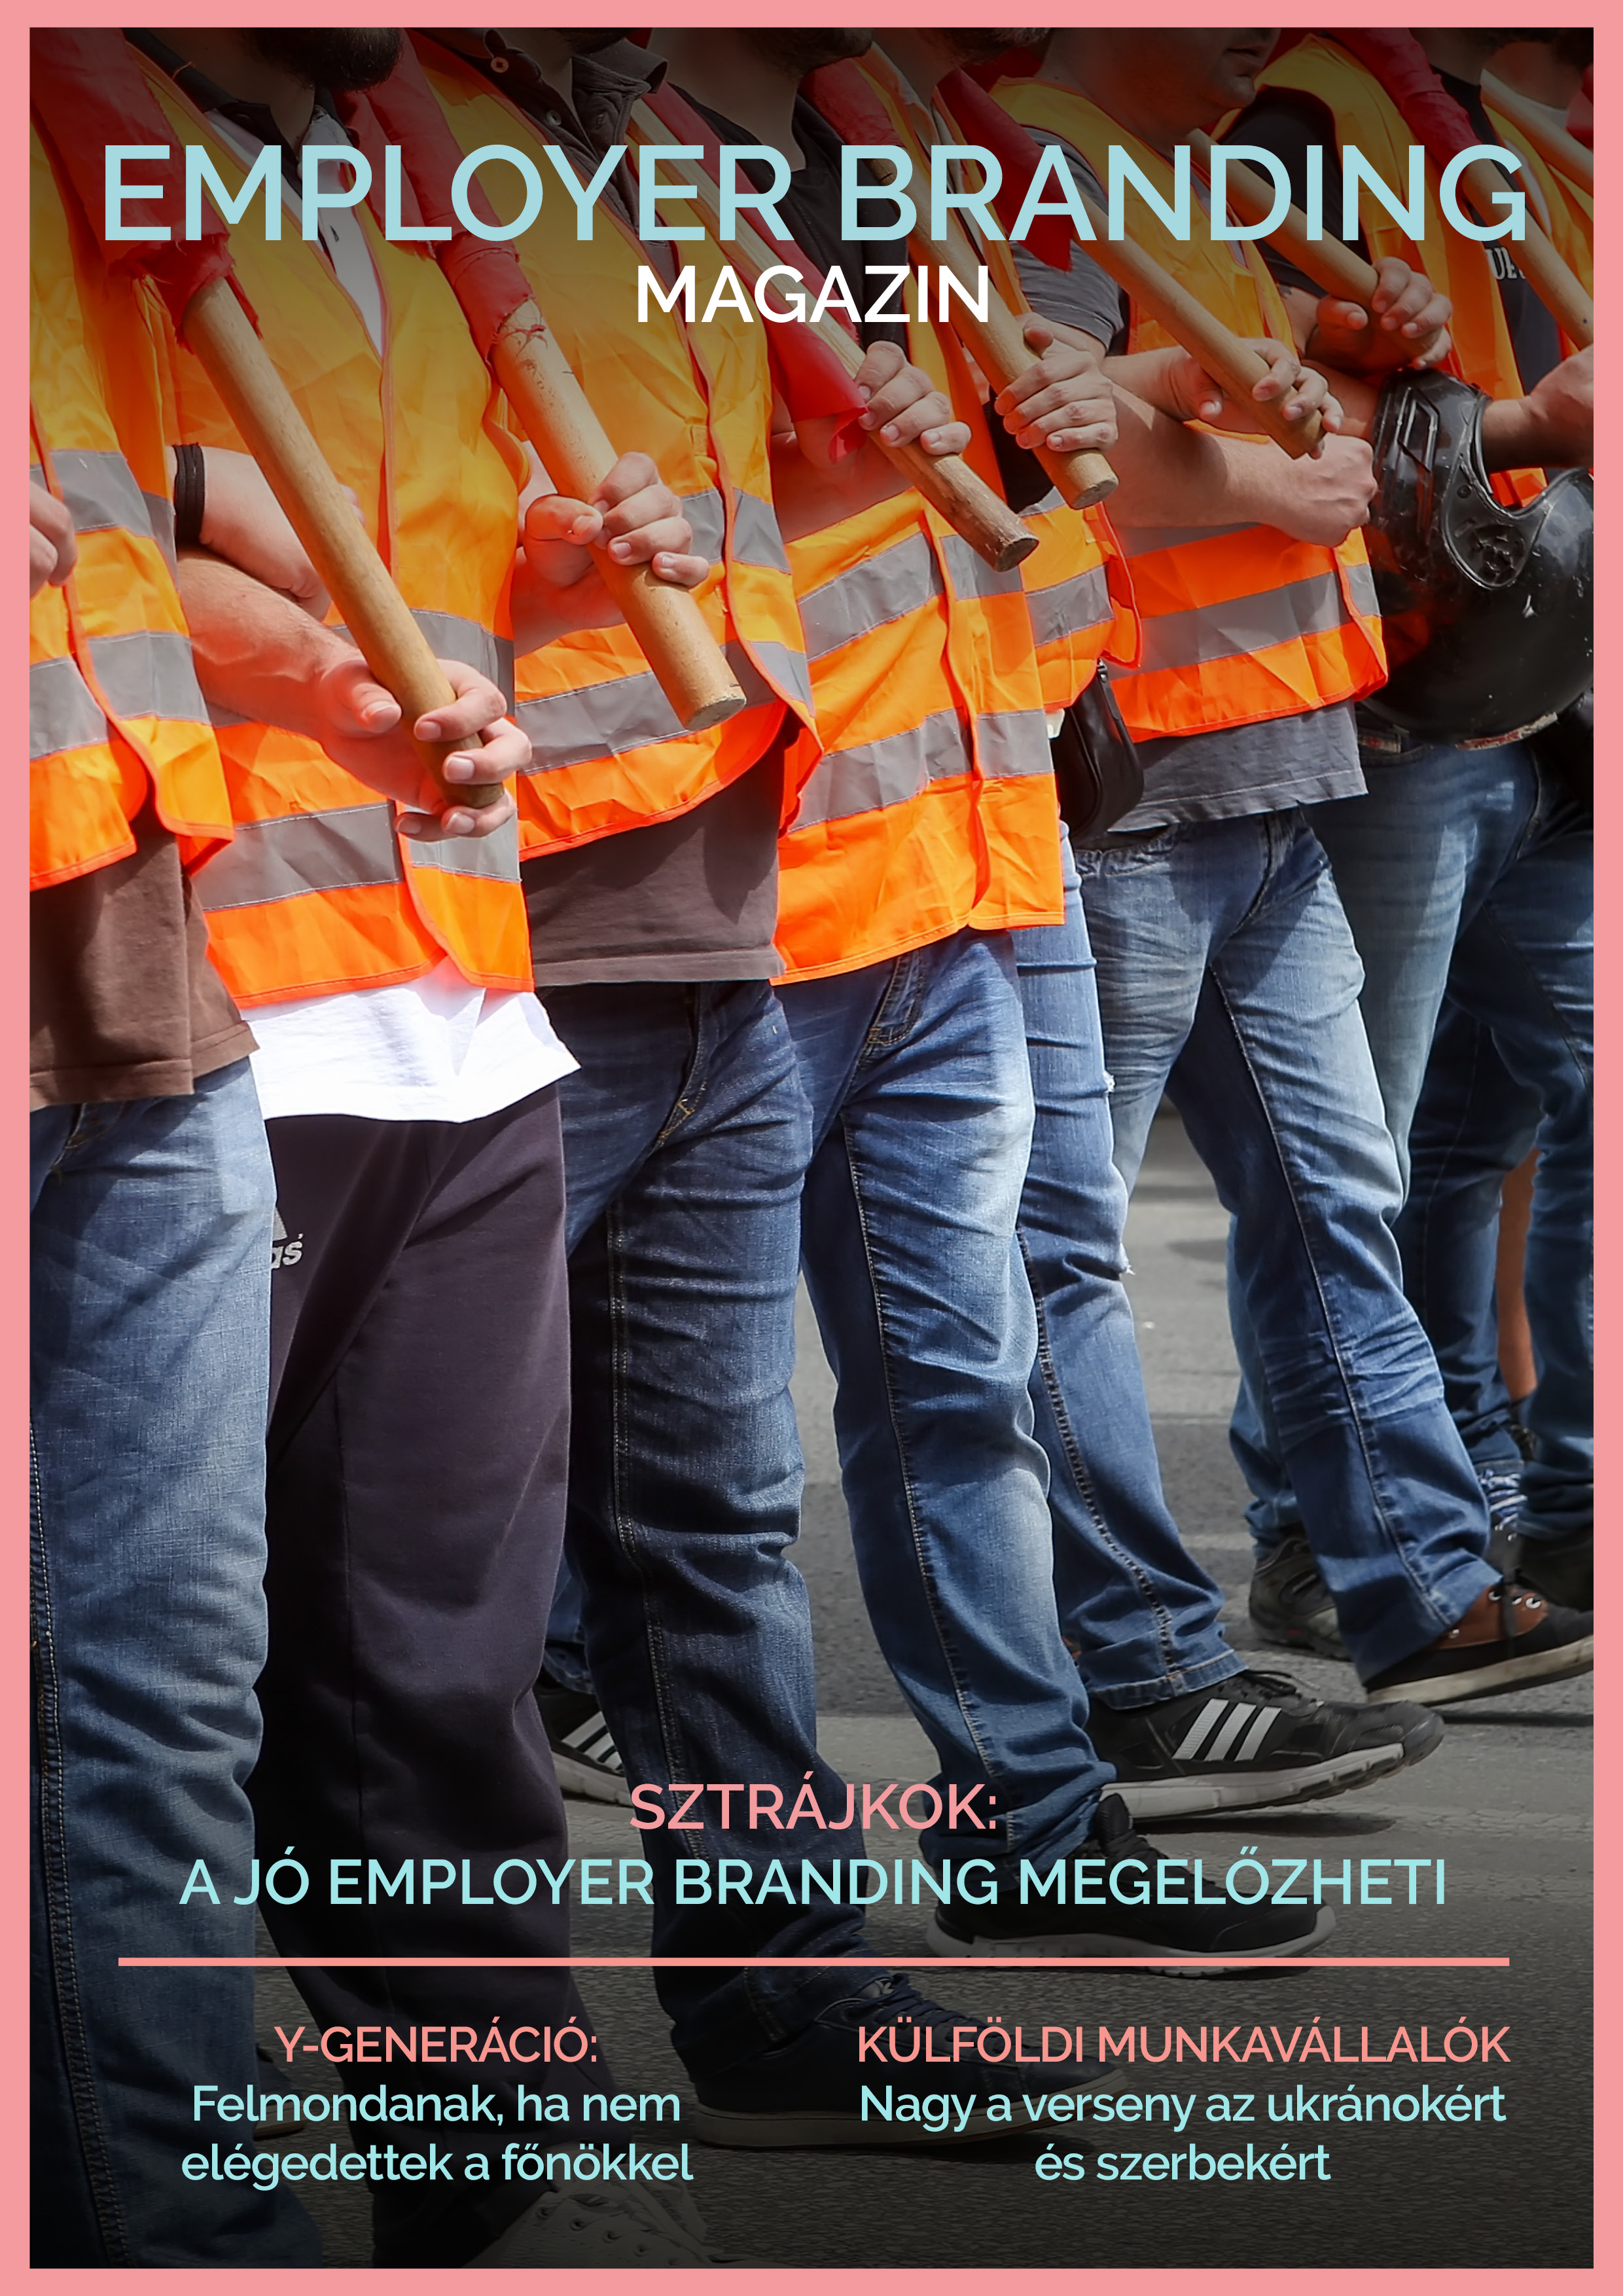 190813 Employer branding magazin COVER